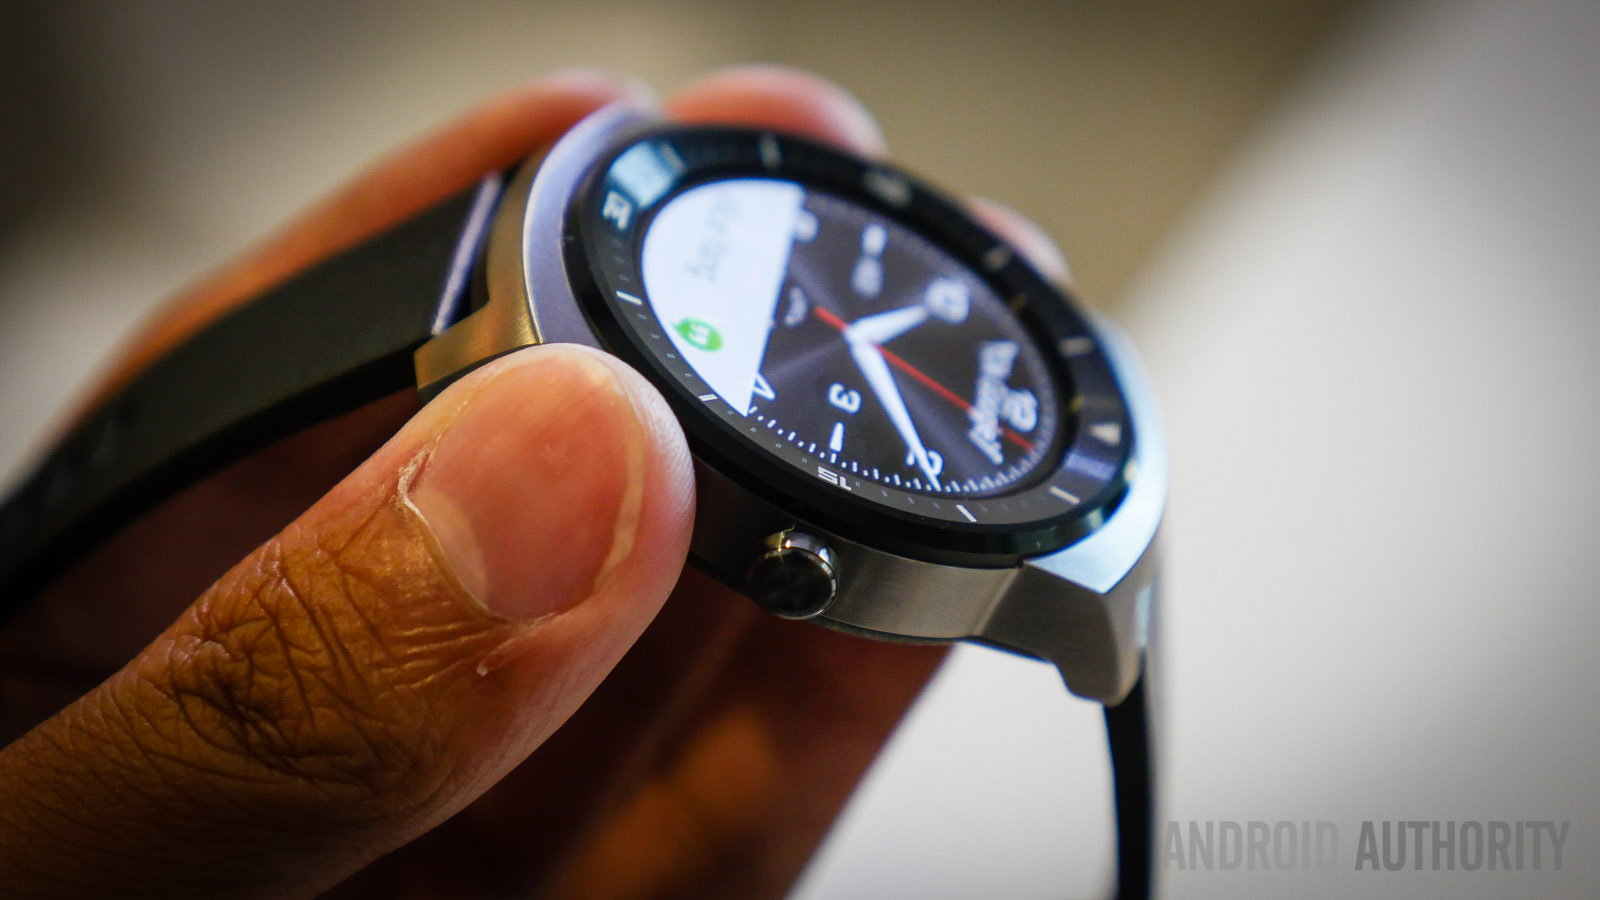 lg g watch r first look aa (8 of 22)